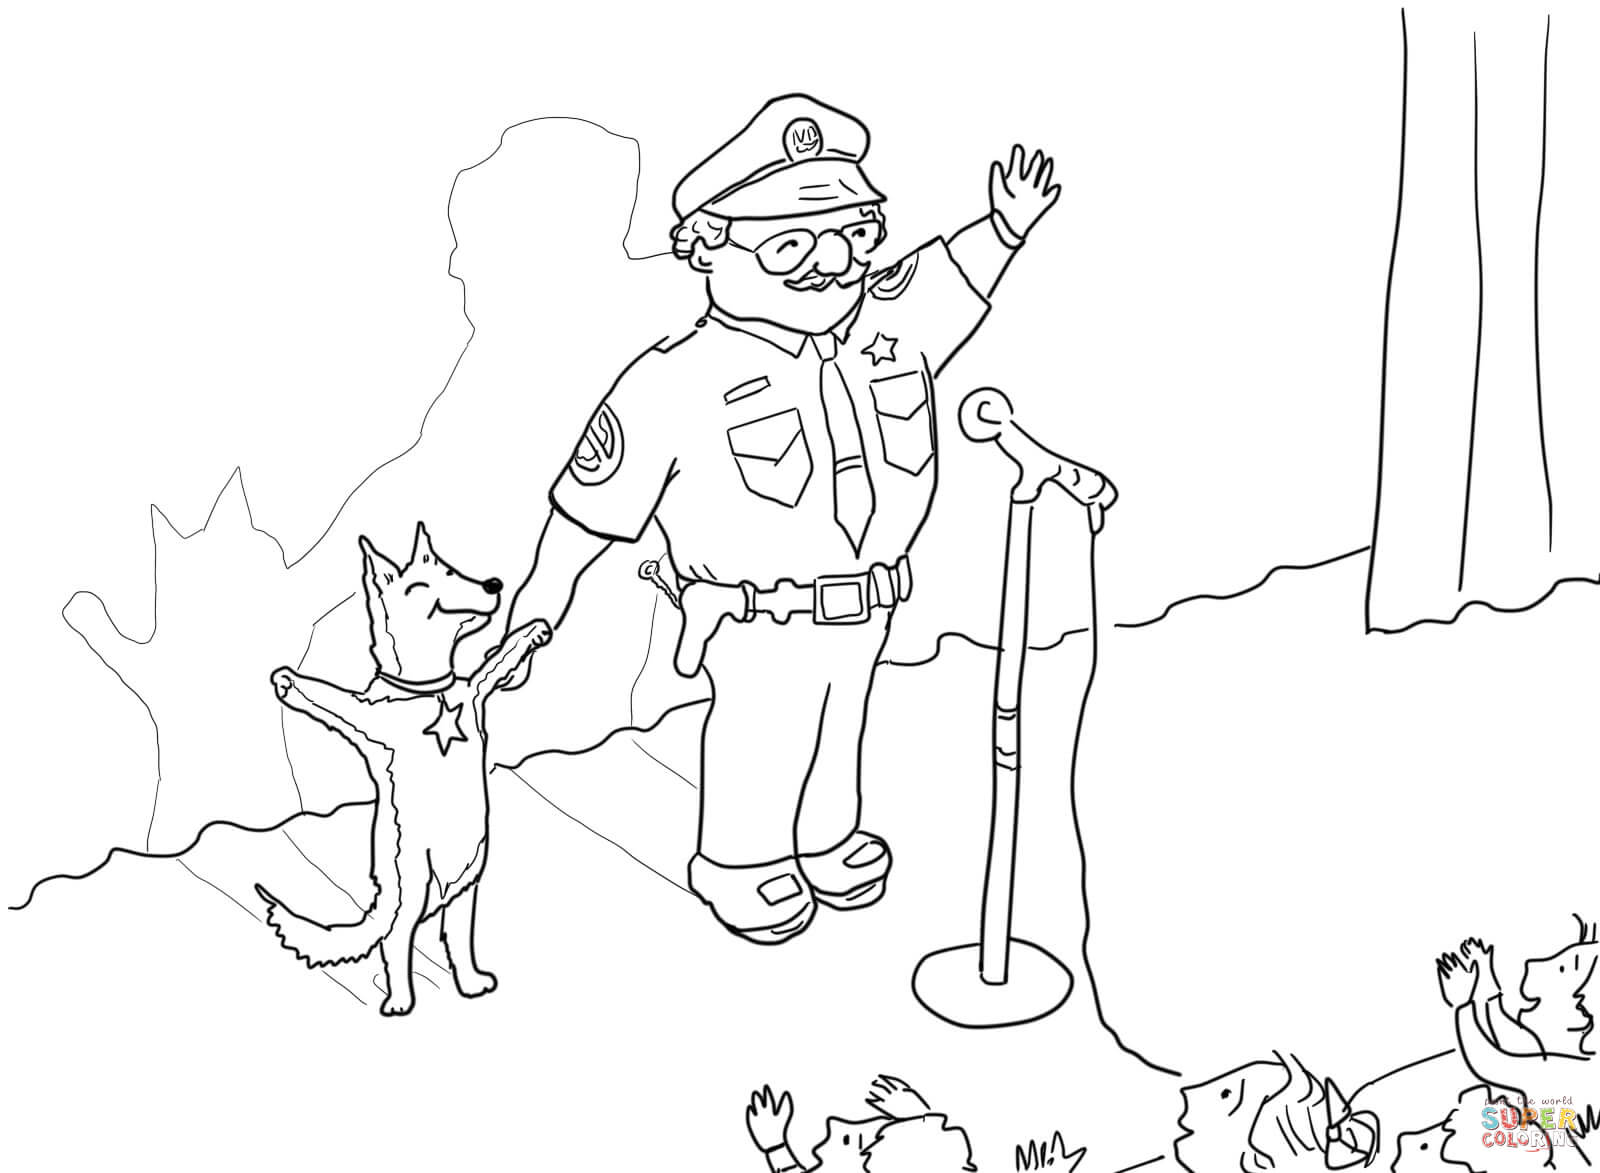 officer buckle and gloria printables officer buckle and gloria coloring sheets raifapensa49s officer buckle gloria printables and